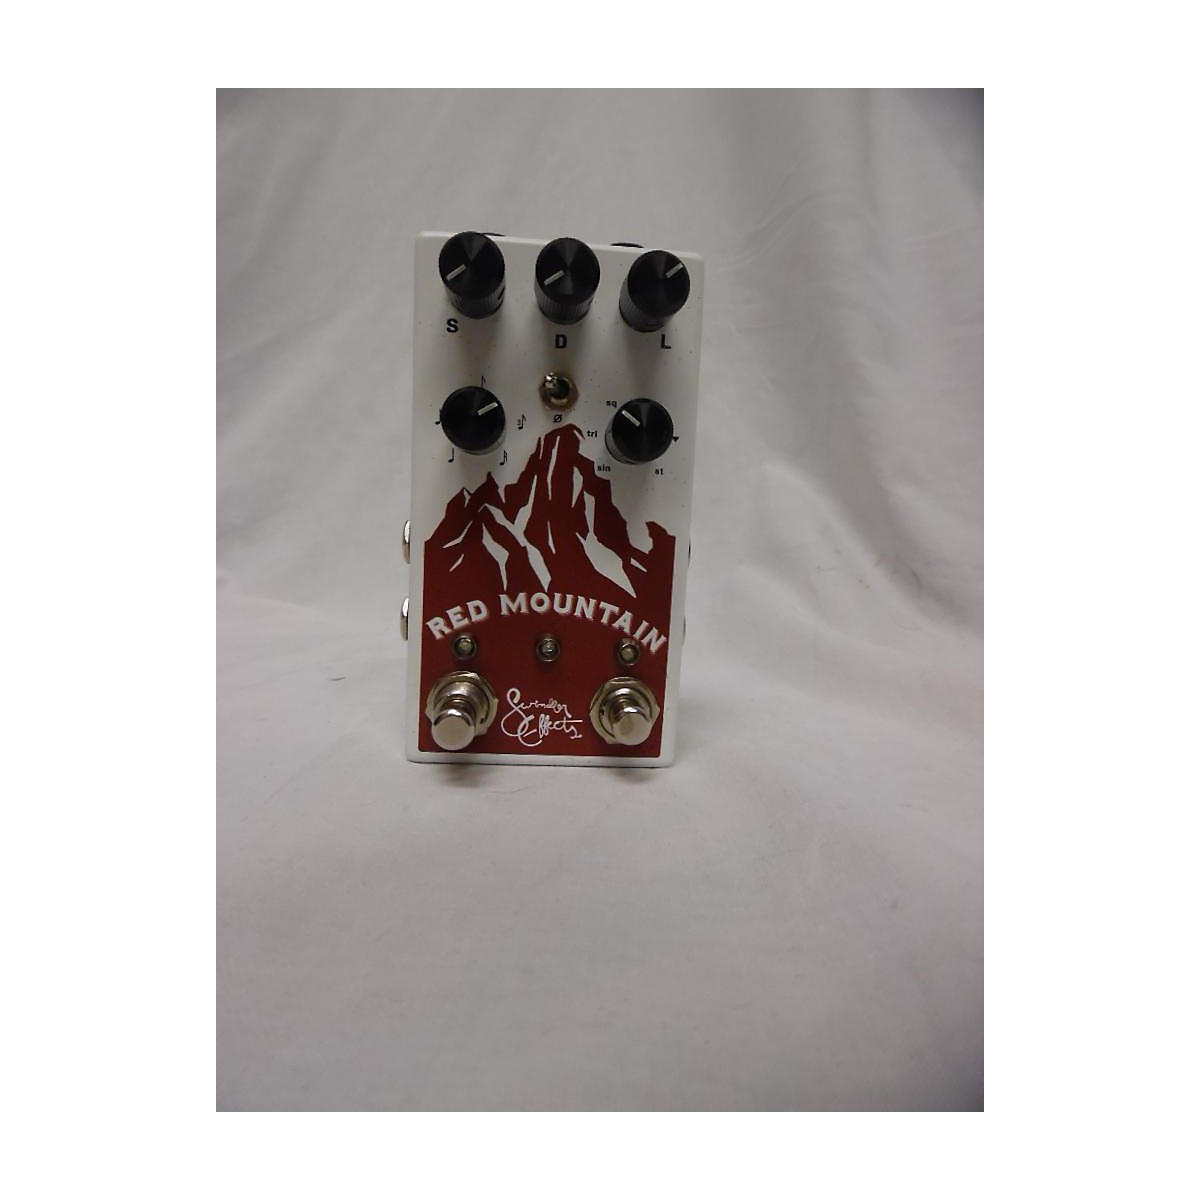 In Store Used Used Swindler Effects Red Mountain V1 Effect Pedal